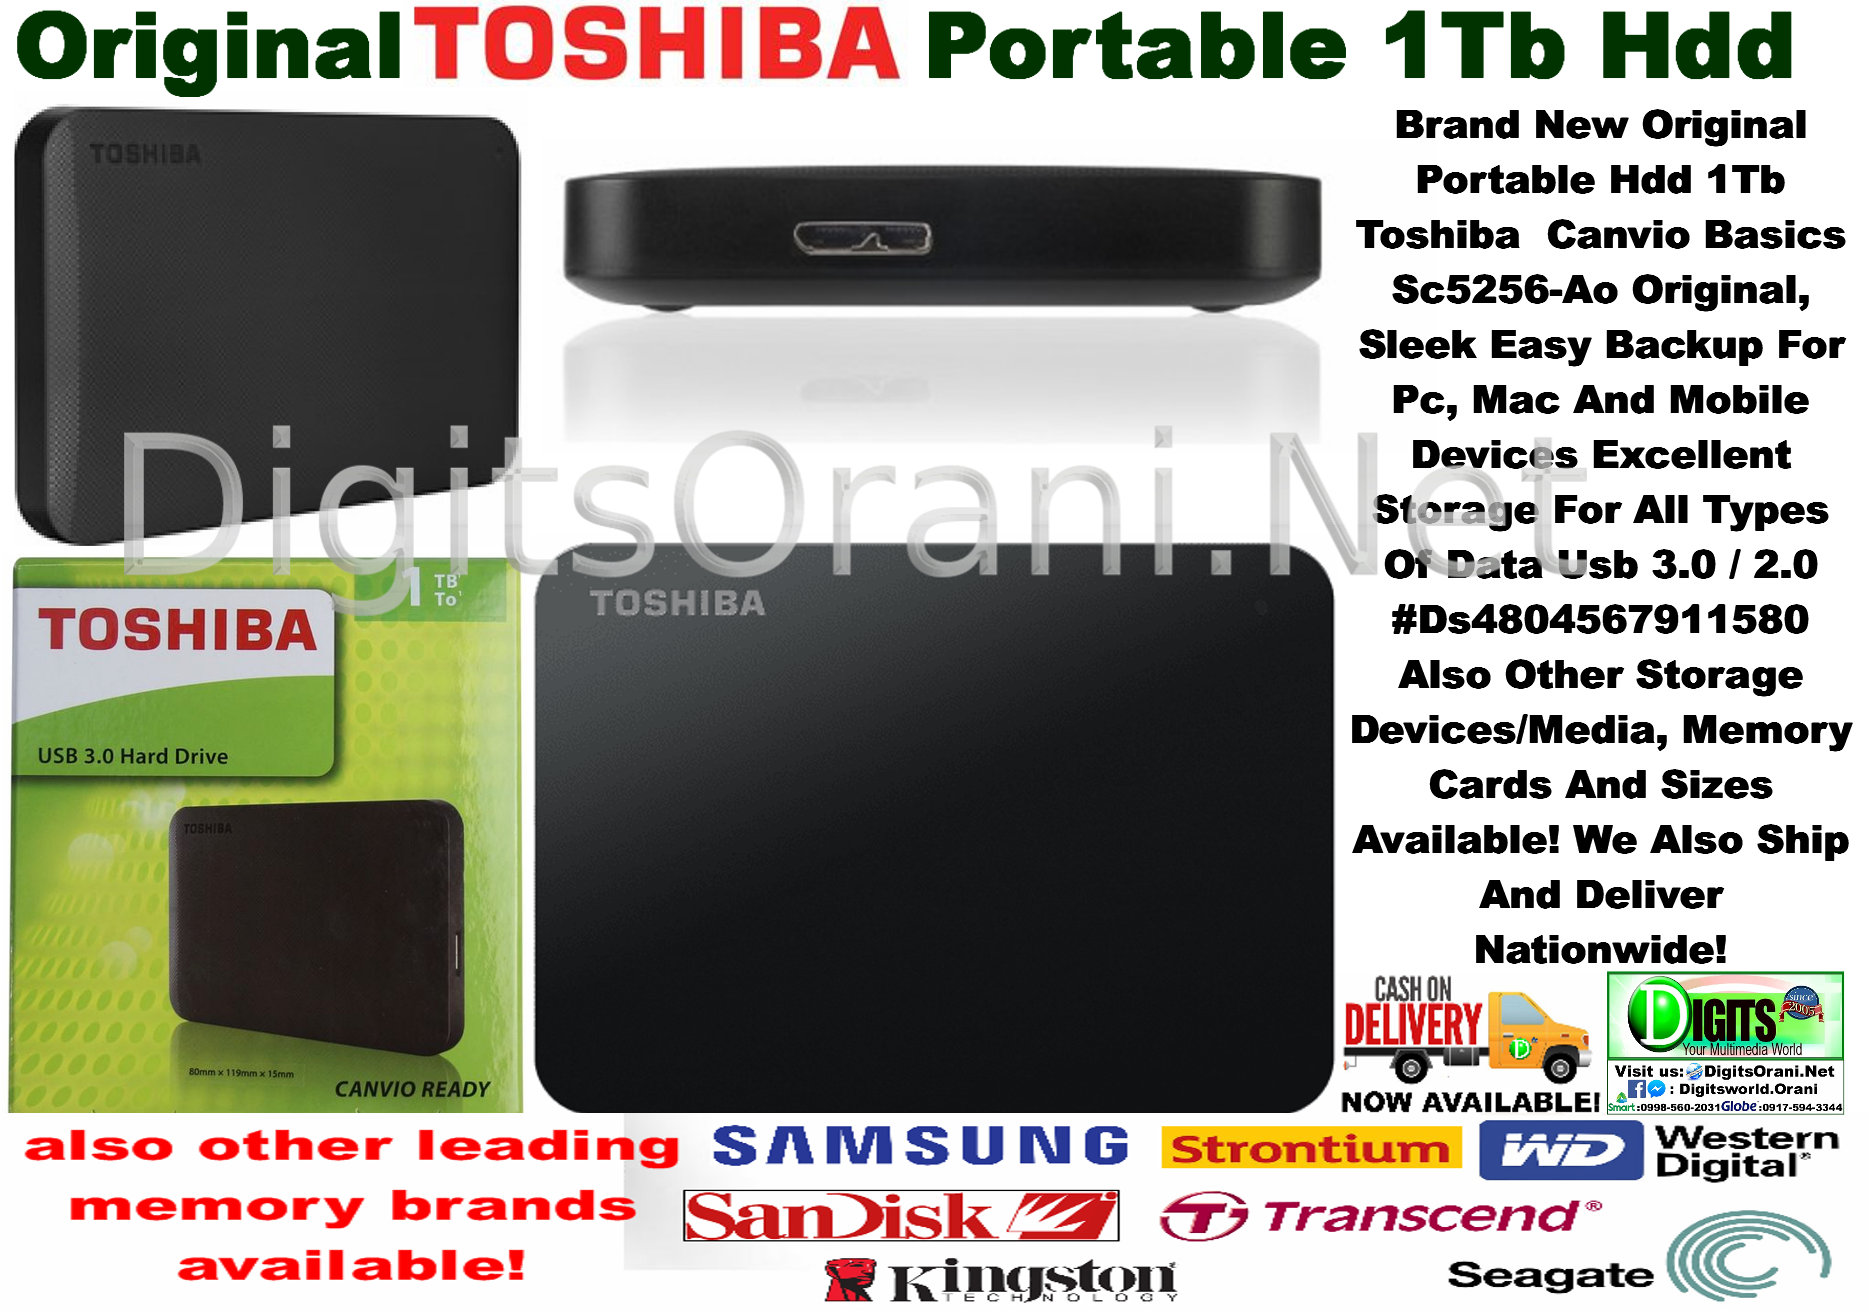 Original Portable Hdd 1Tb Toshiba Canvio Basics Sc5256-Ao Original, Sleek  Easy Backup For Pc, Mac And Mobile Devices Excellent Storage For All Types